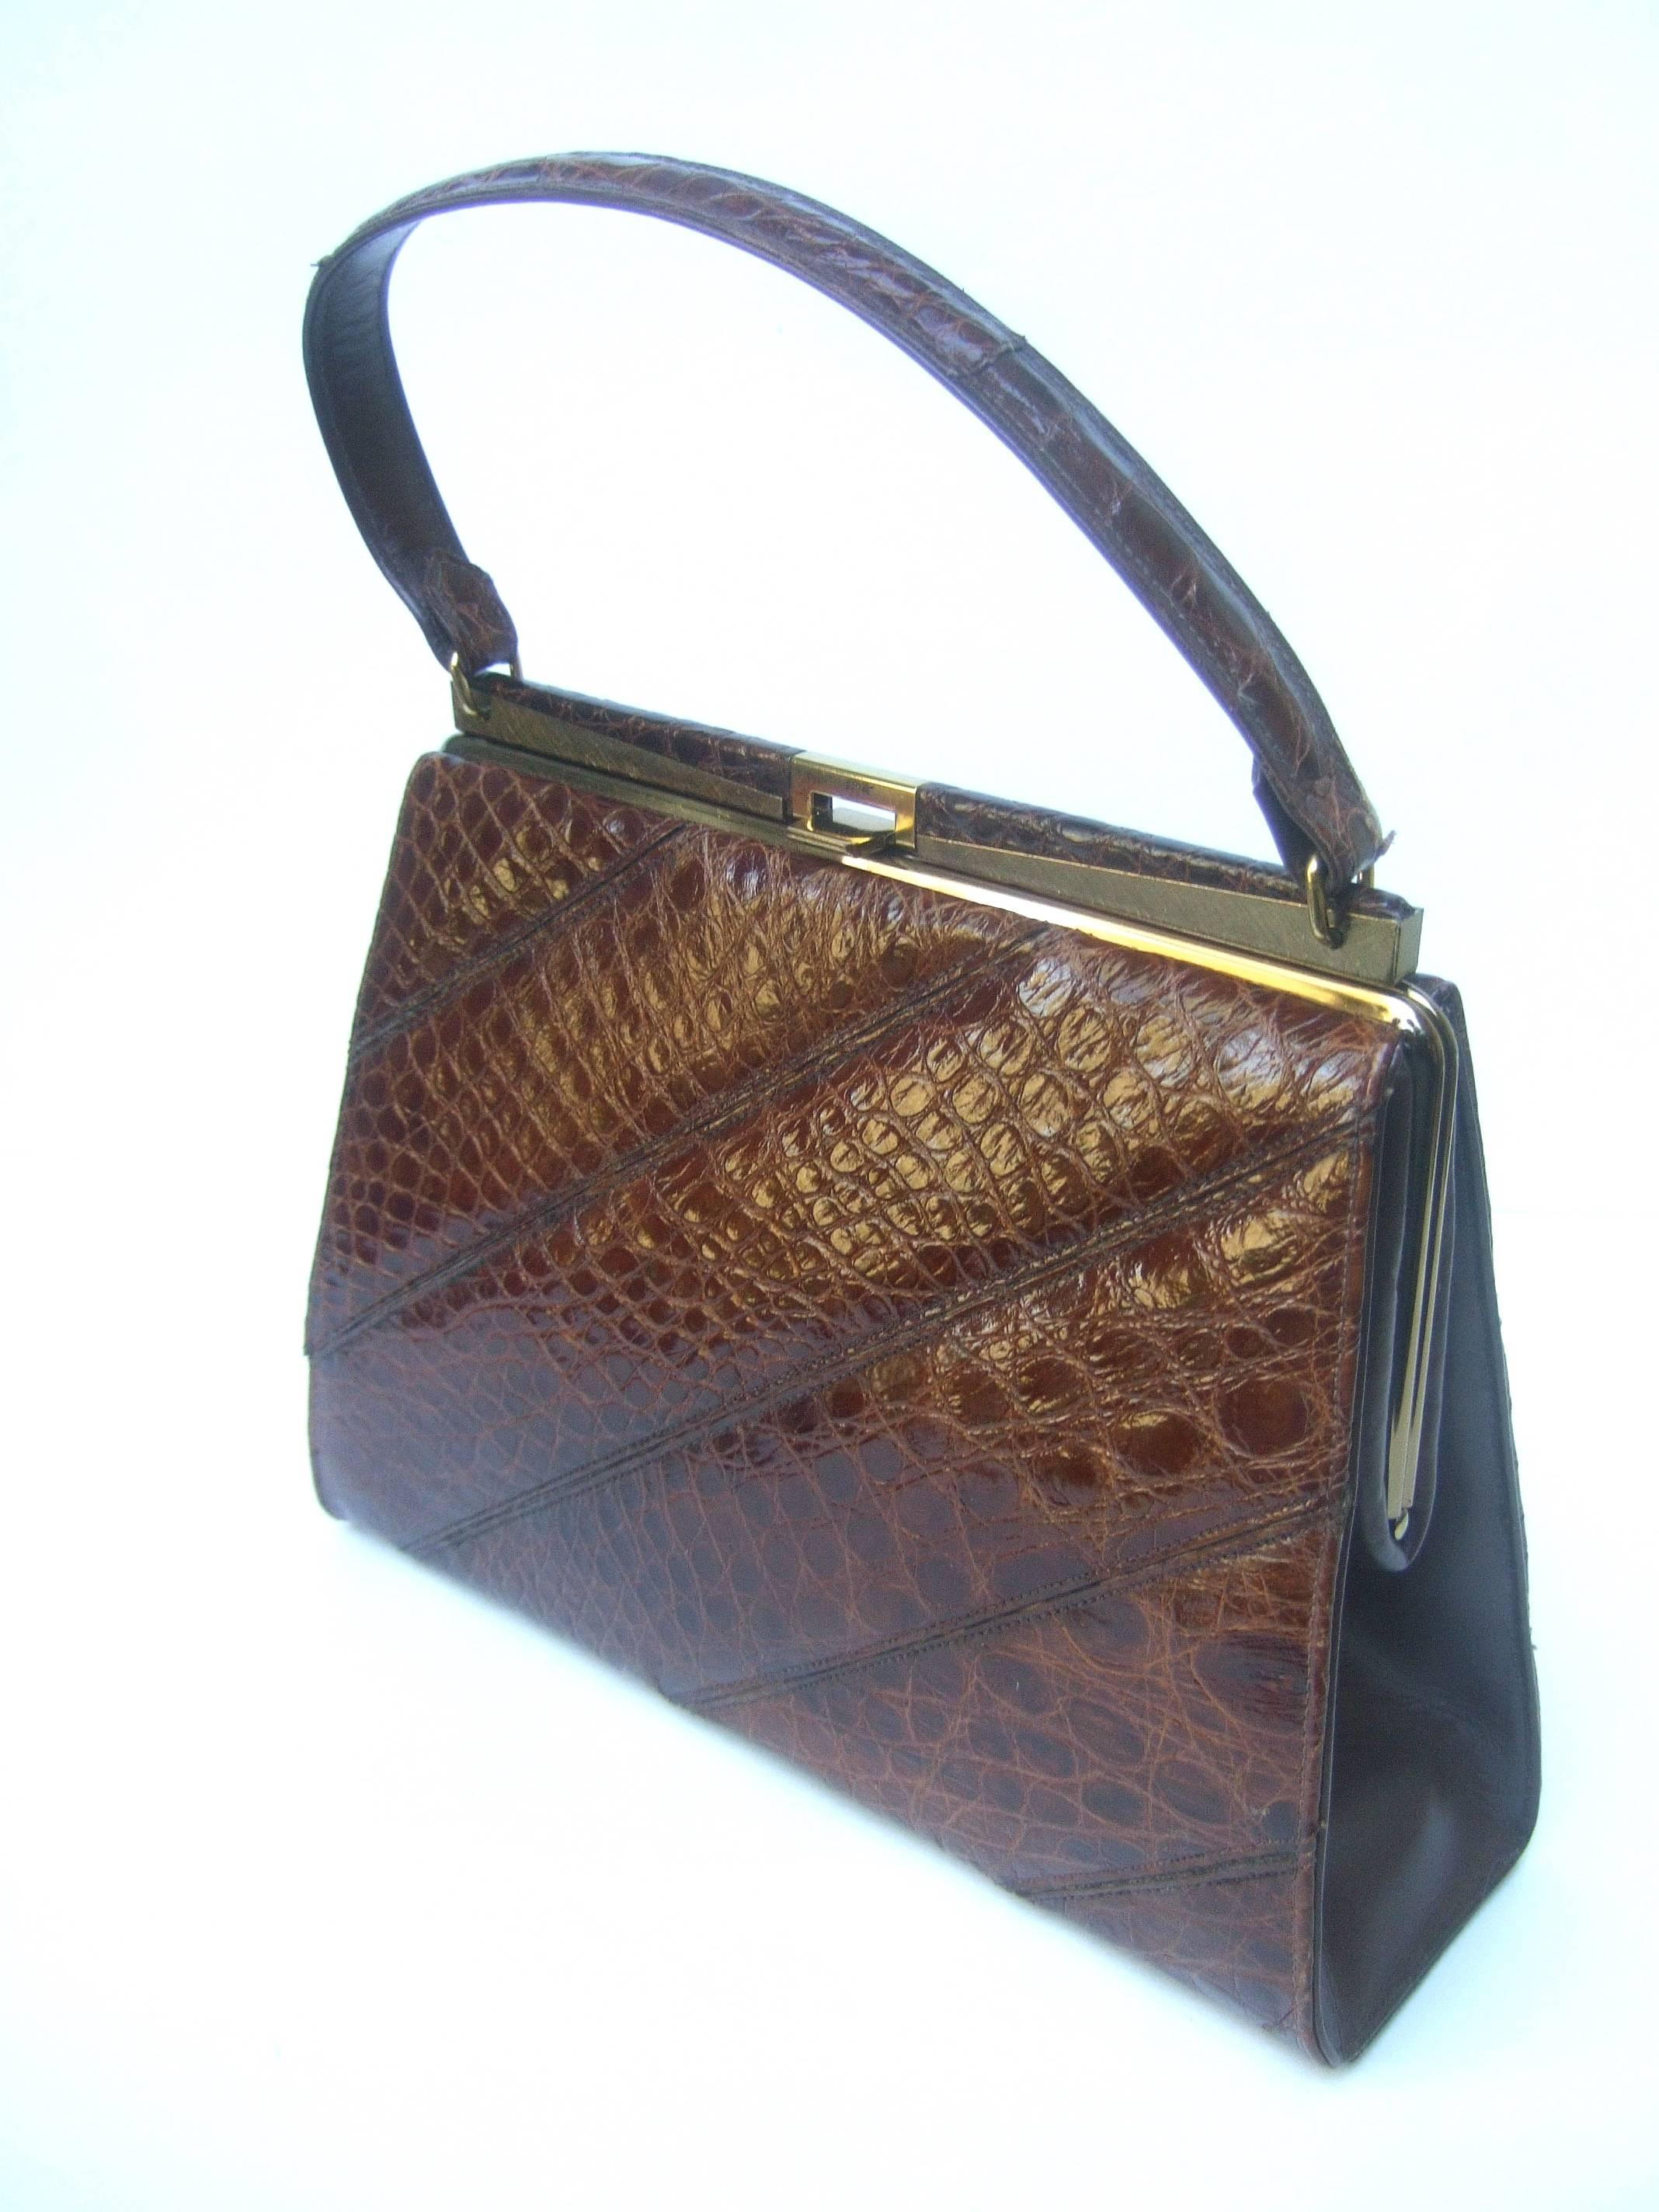 1stdibs Tri-tone Straw Woven Square Structured Handbag With Brass Toggle Closure, 1950s